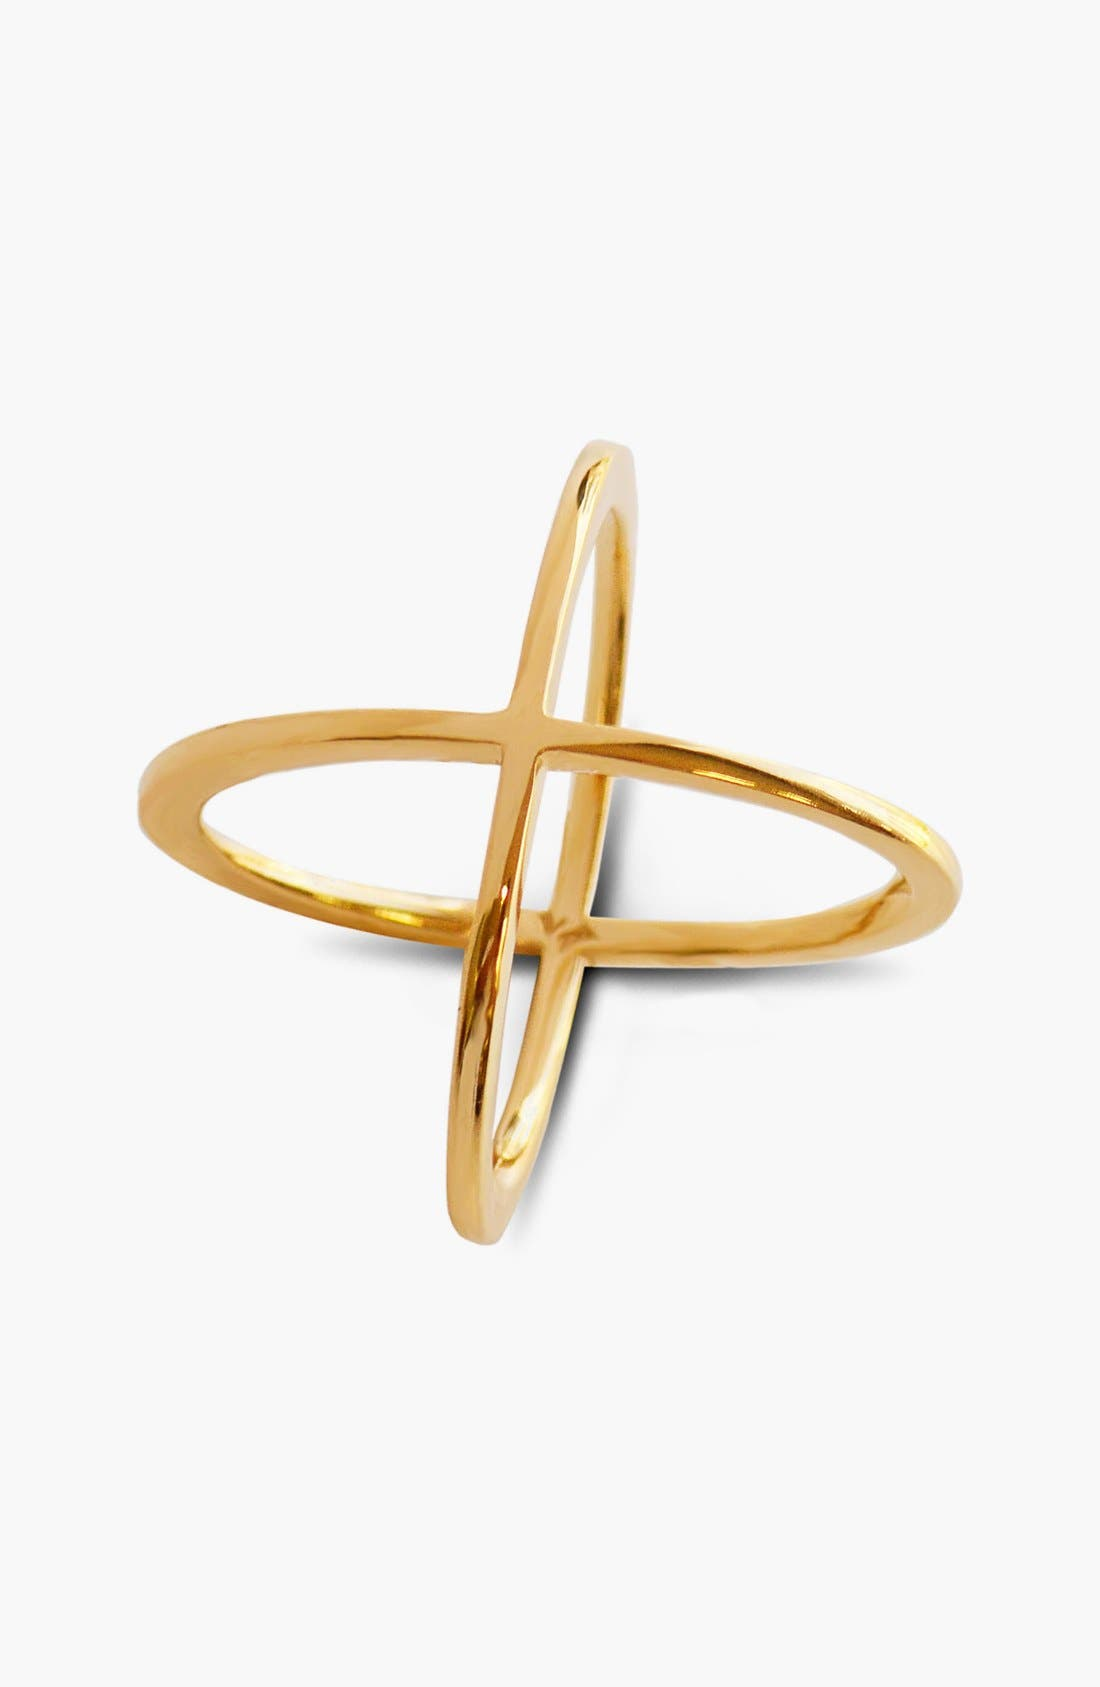 Main Image - Bony Levy 'X' Ring (Limited Edition) (Nordstrom Exclusive)